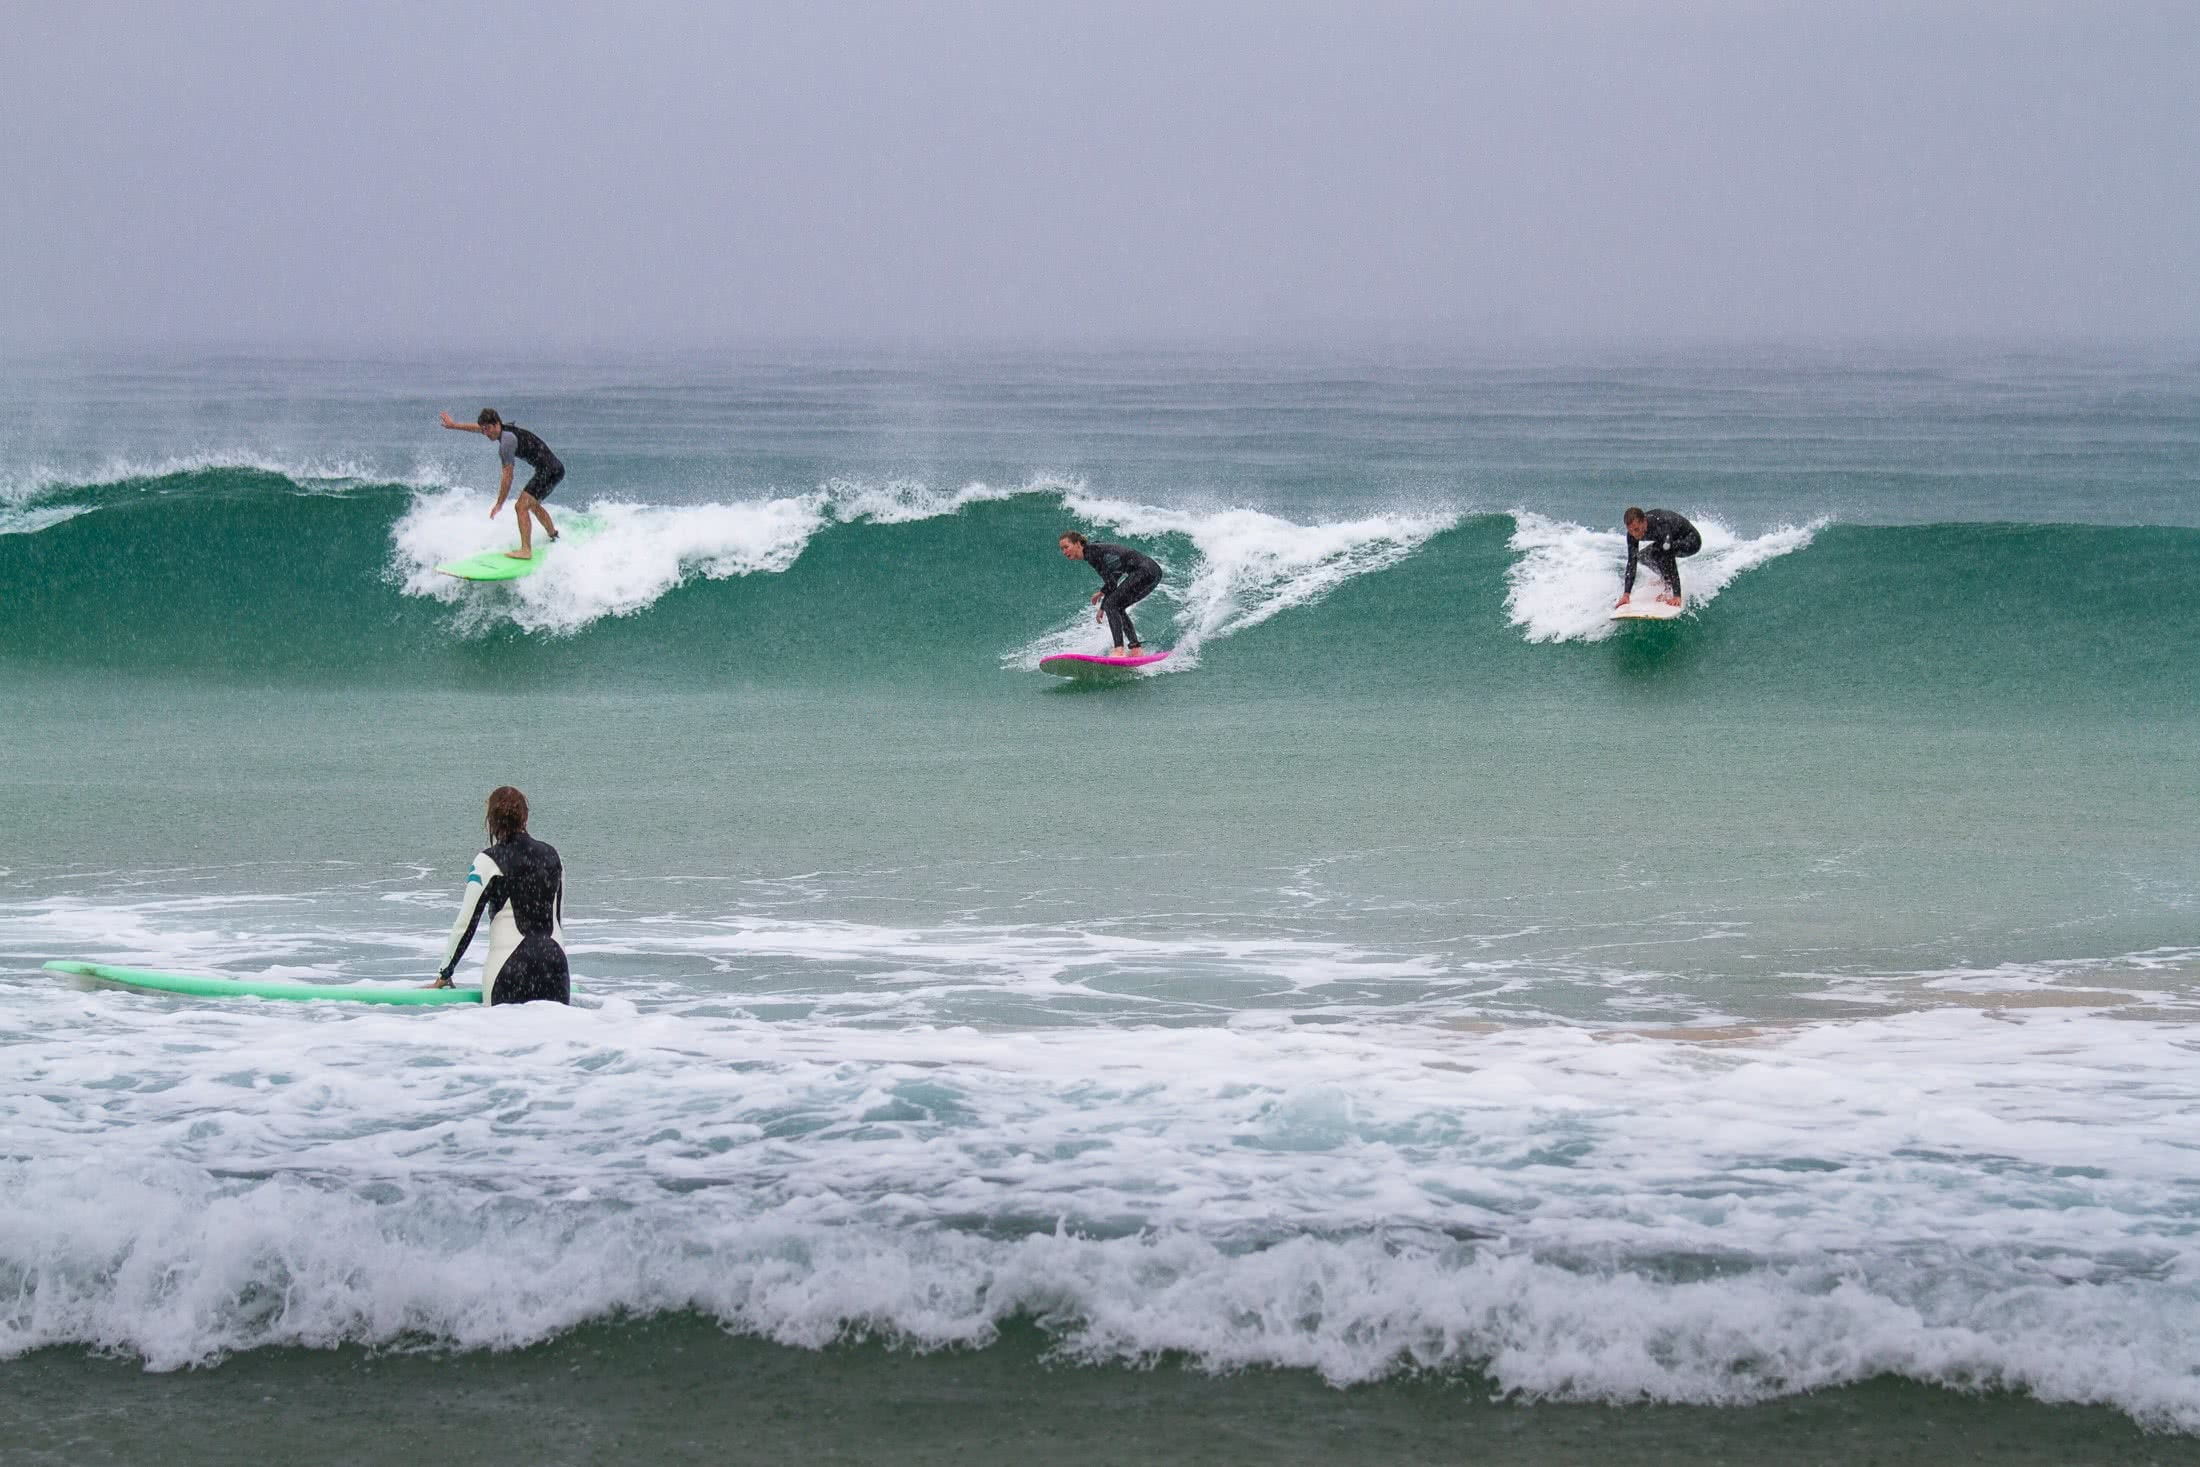 Find Your Adventure Soulmate - Wilderness Escapes Liam Hardy Wilderness Surf Escape friends laughing party wave surfing